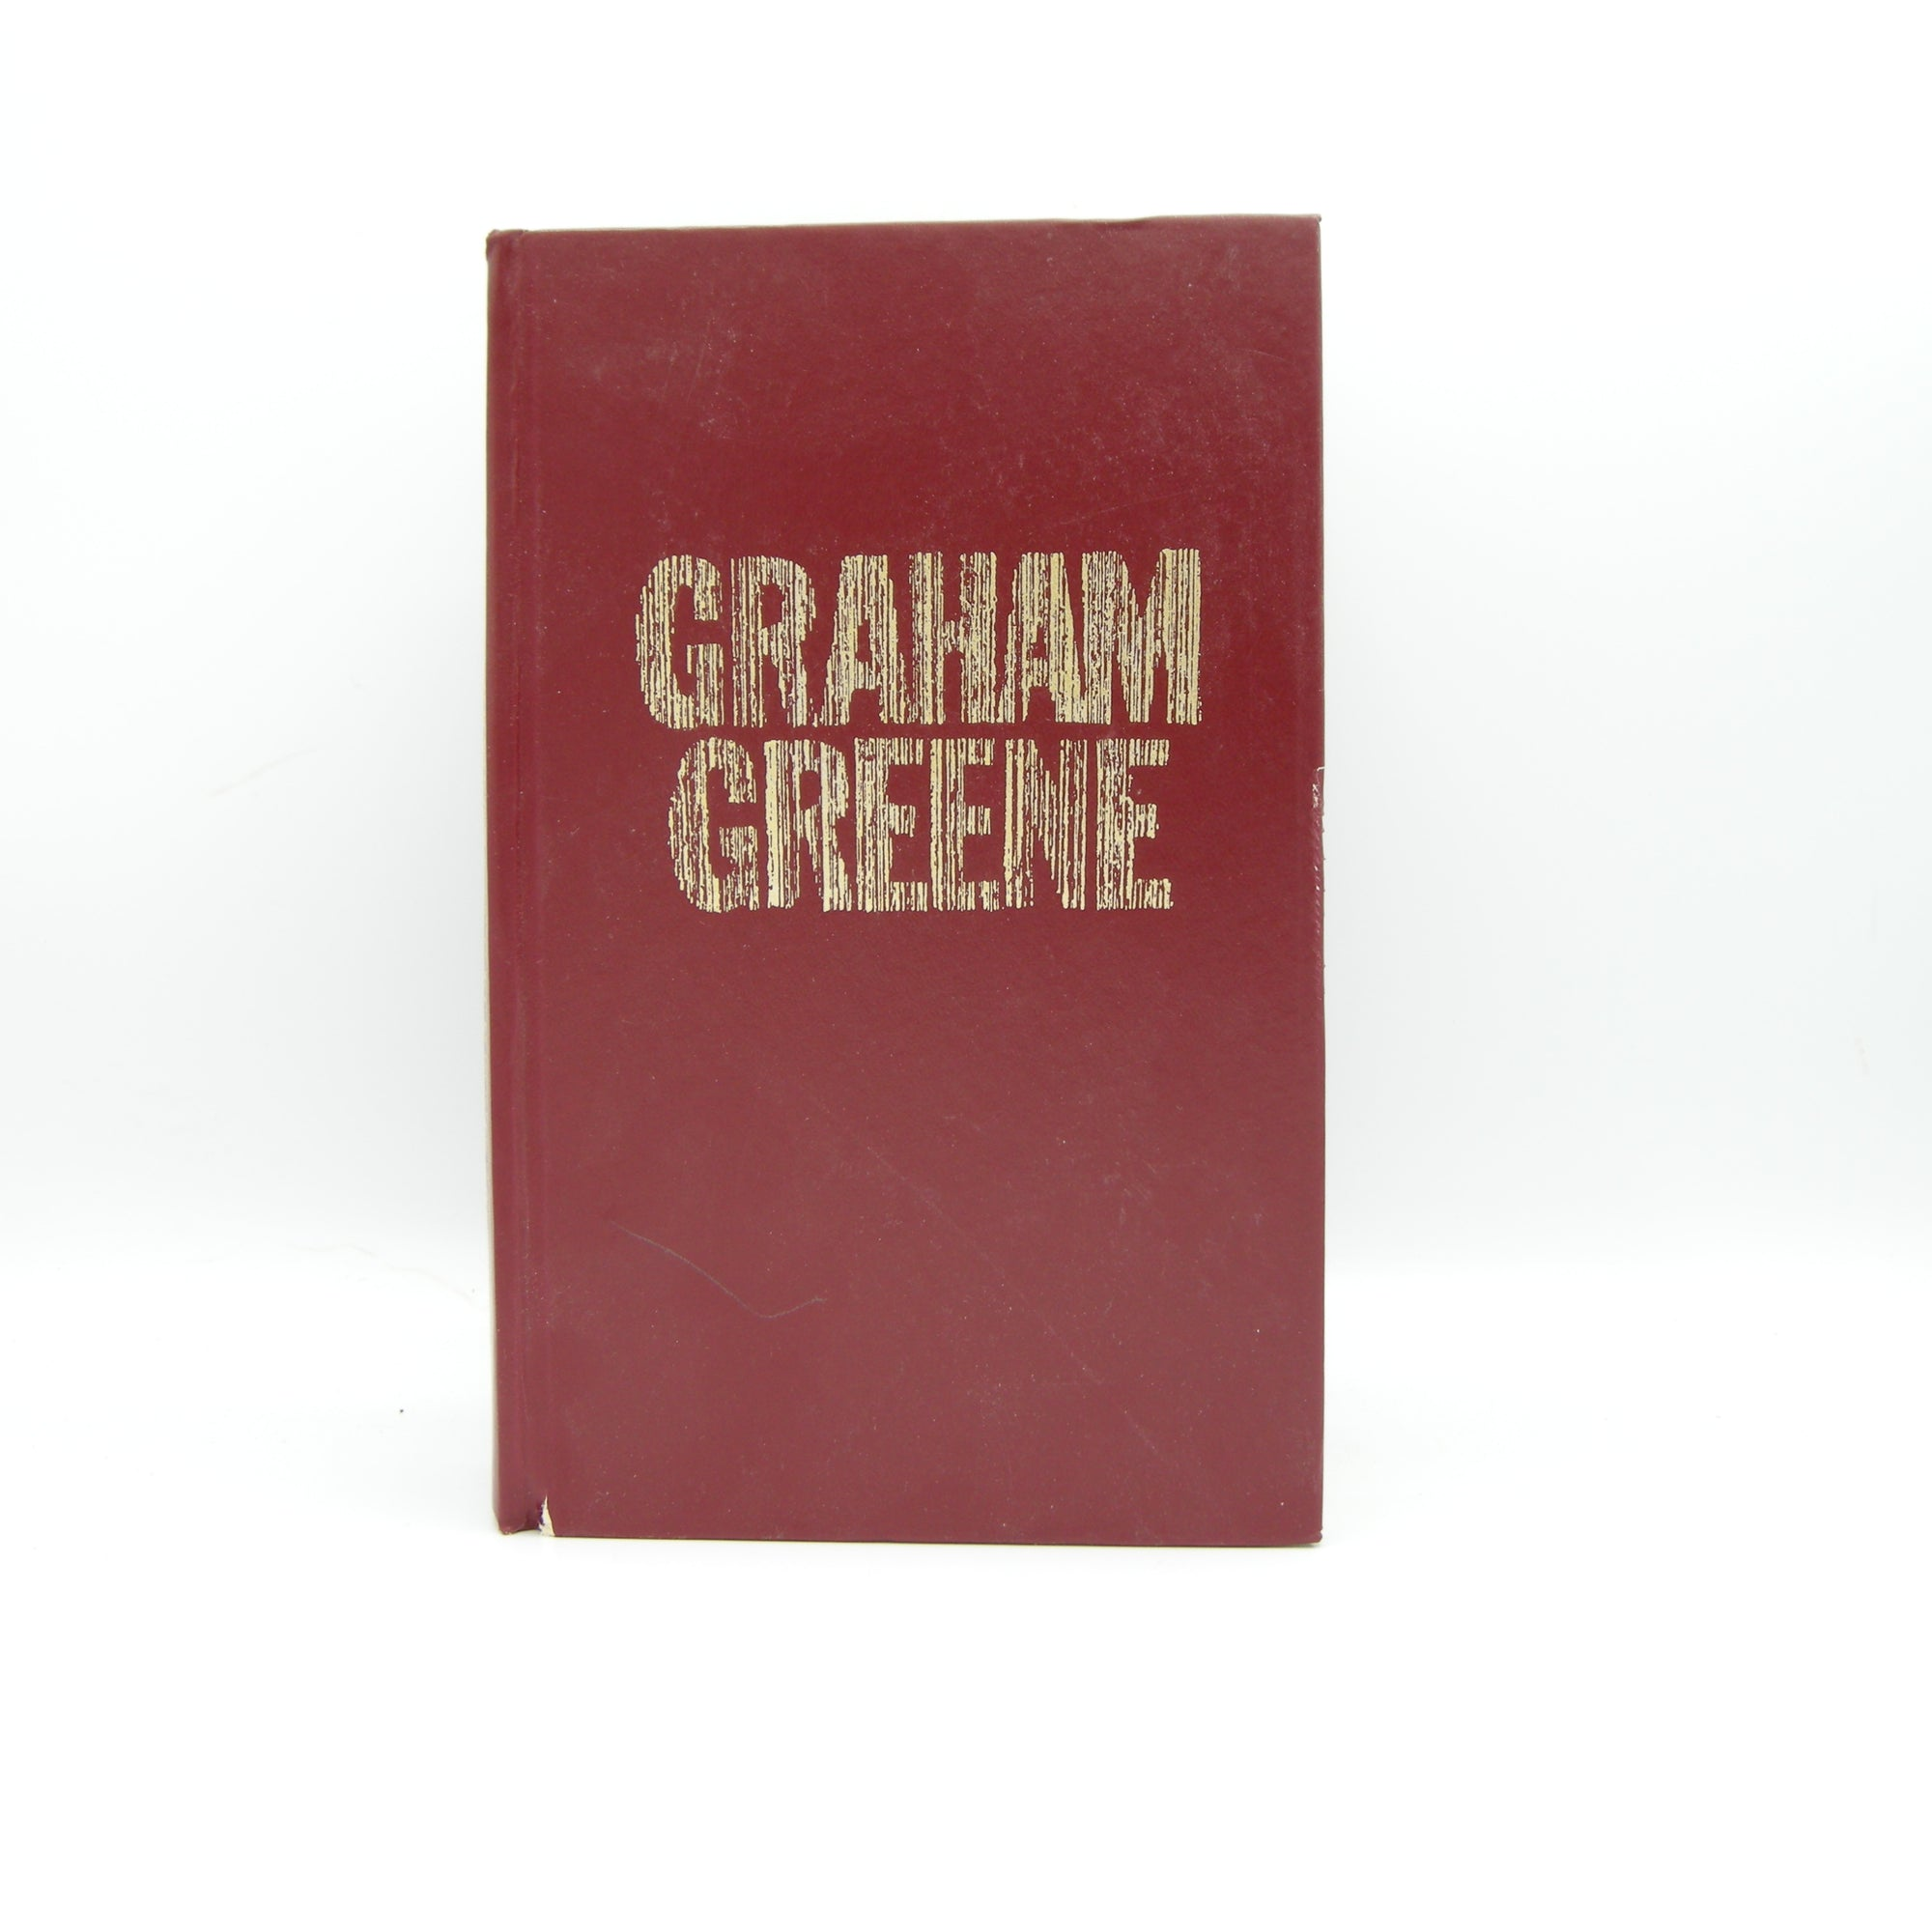 First Edition Graham Greene Collection 1977